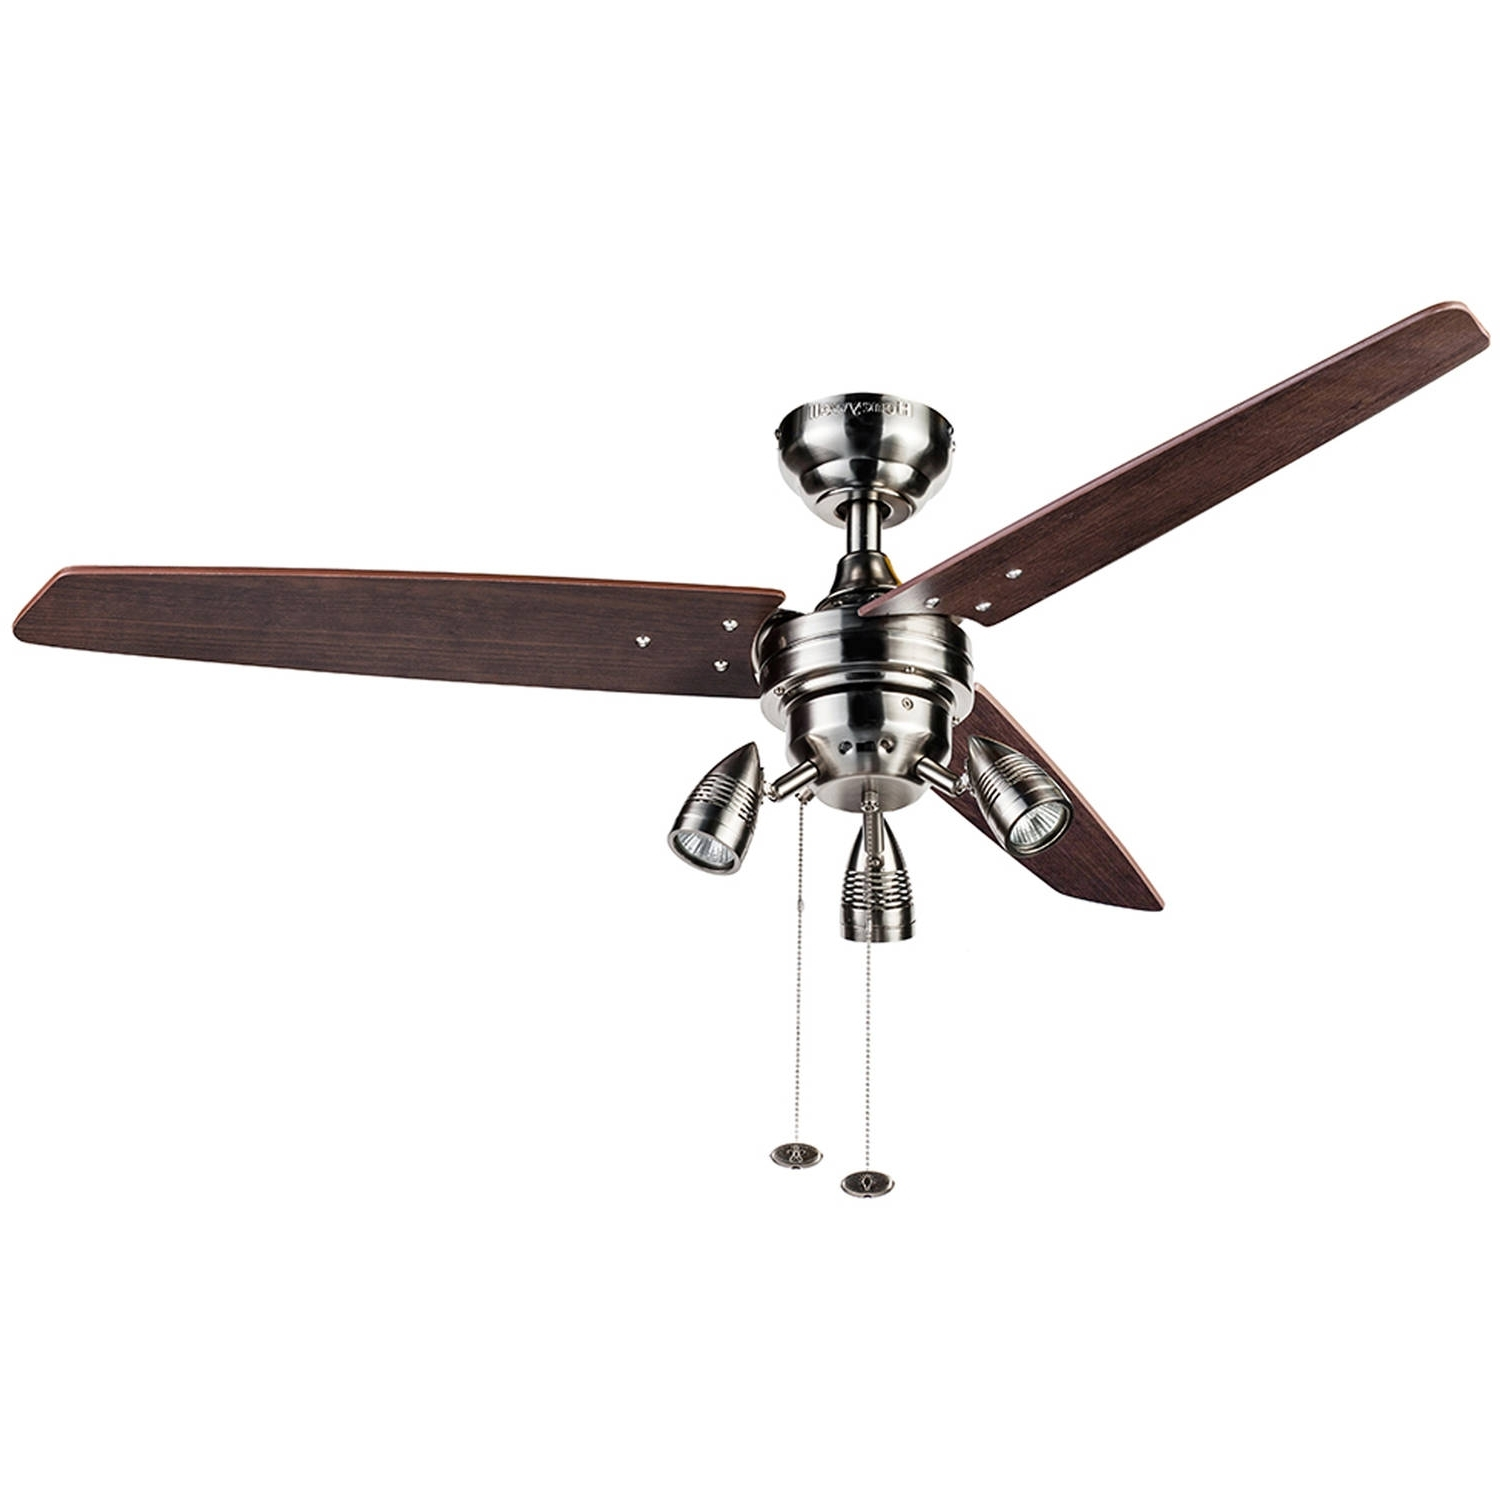 "Well Liked Outdoor Ceiling Fans With Bright Lights Intended For 42"" Mainstays Hugger Indoor Ceiling Fan With Light, White – Walmart (Gallery 15 of 20)"